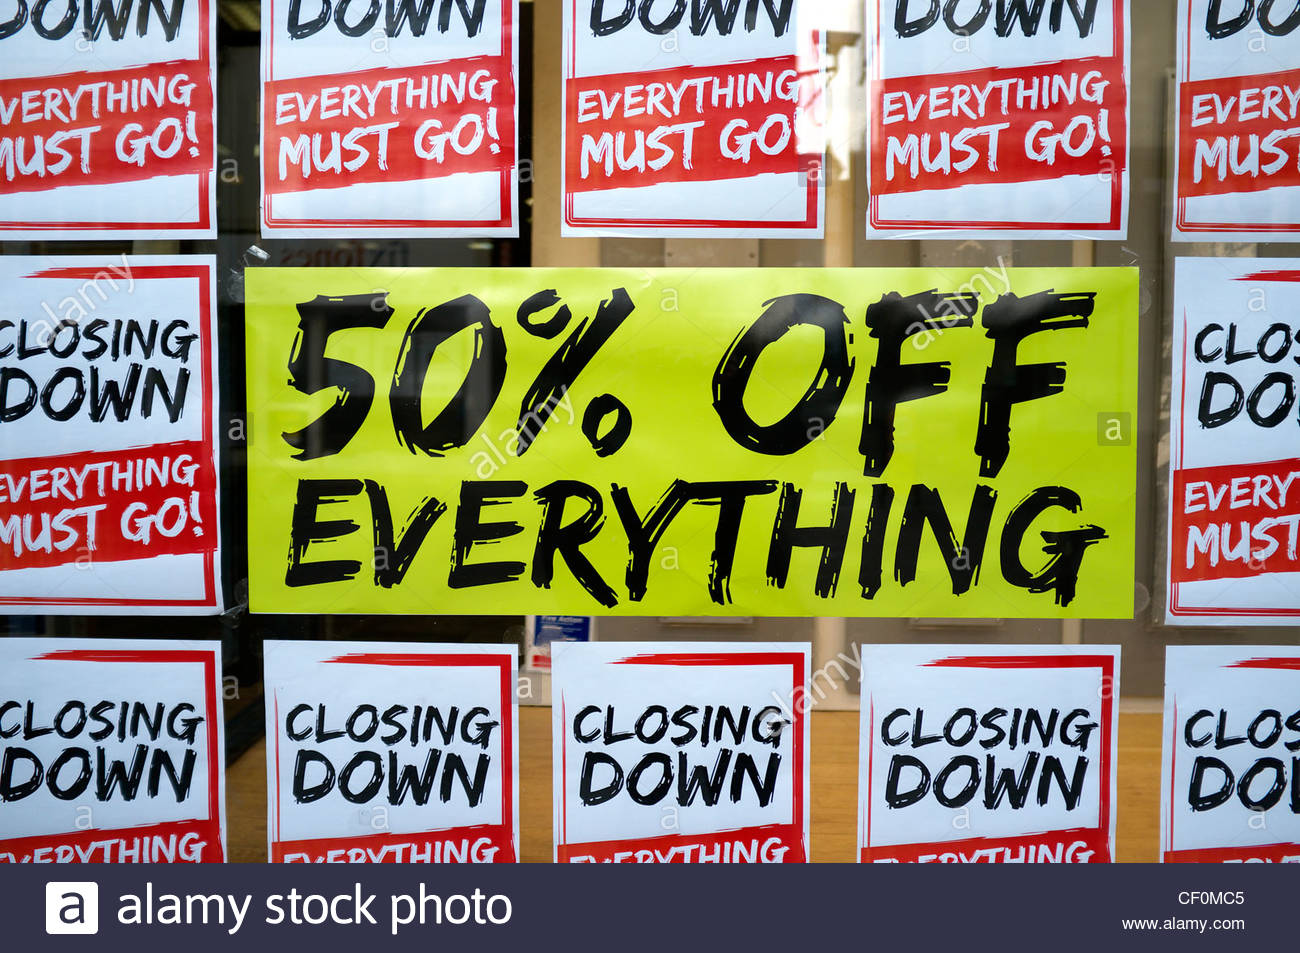 '50% off everything'. Closing down sale sign in shop window. UK. - Stock Image